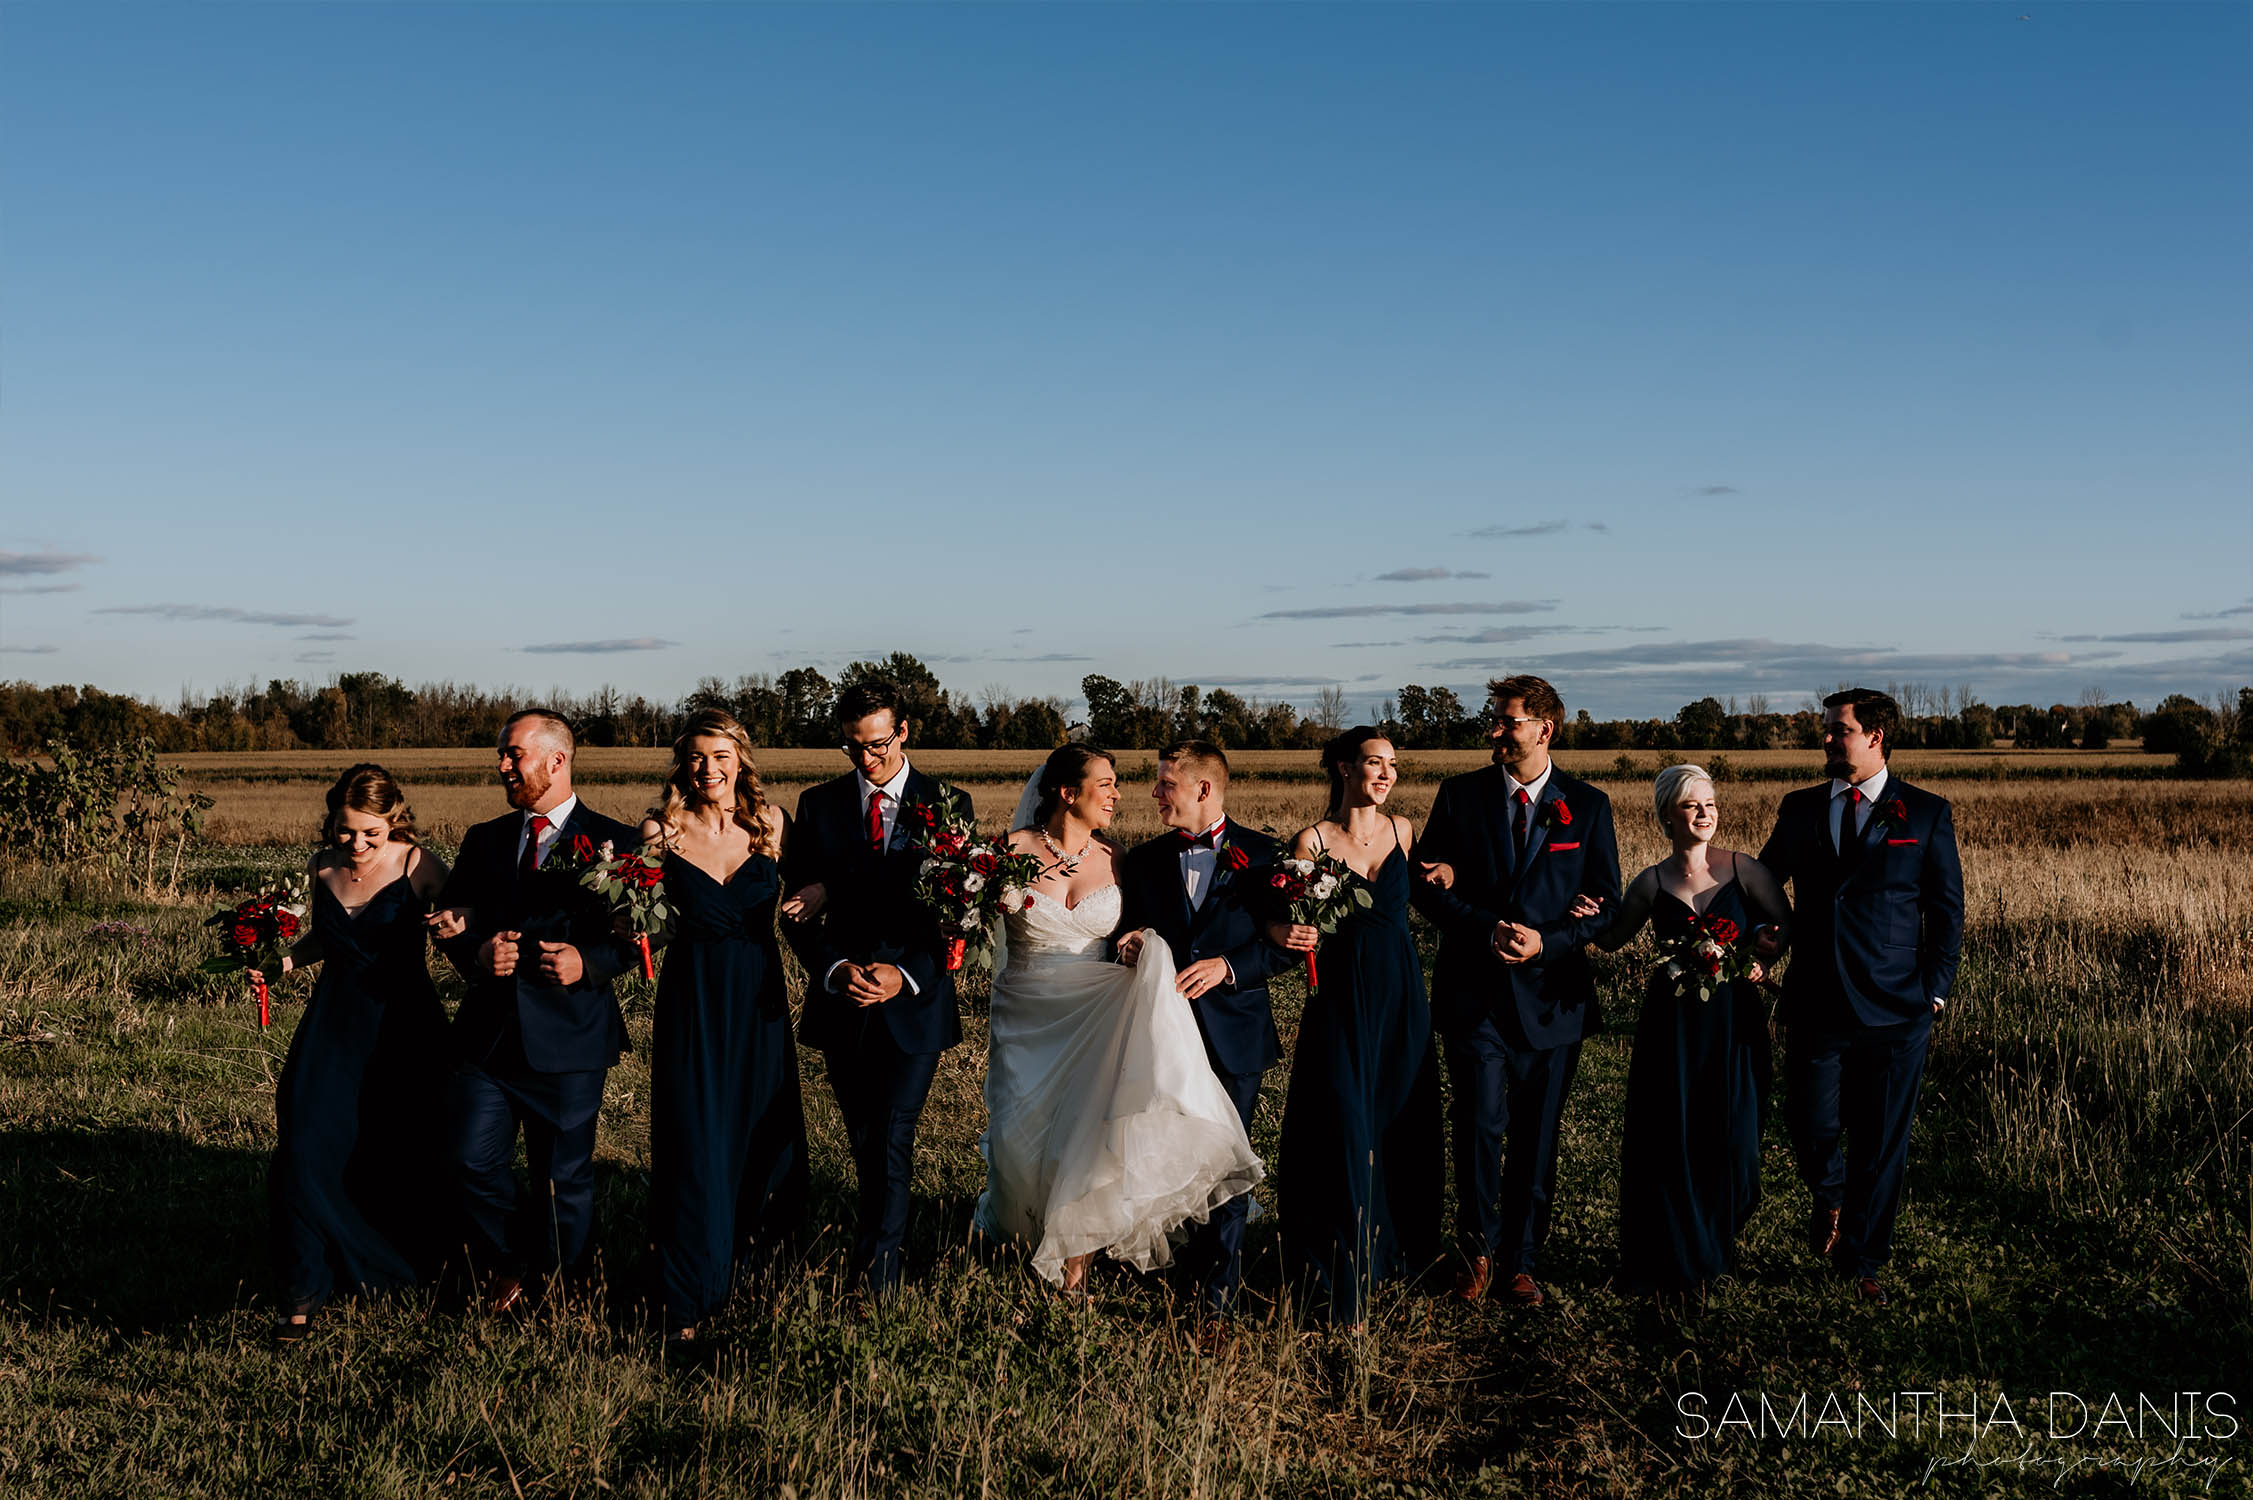 Strathmere field wedding party Ottawa Samantha Danis Photography